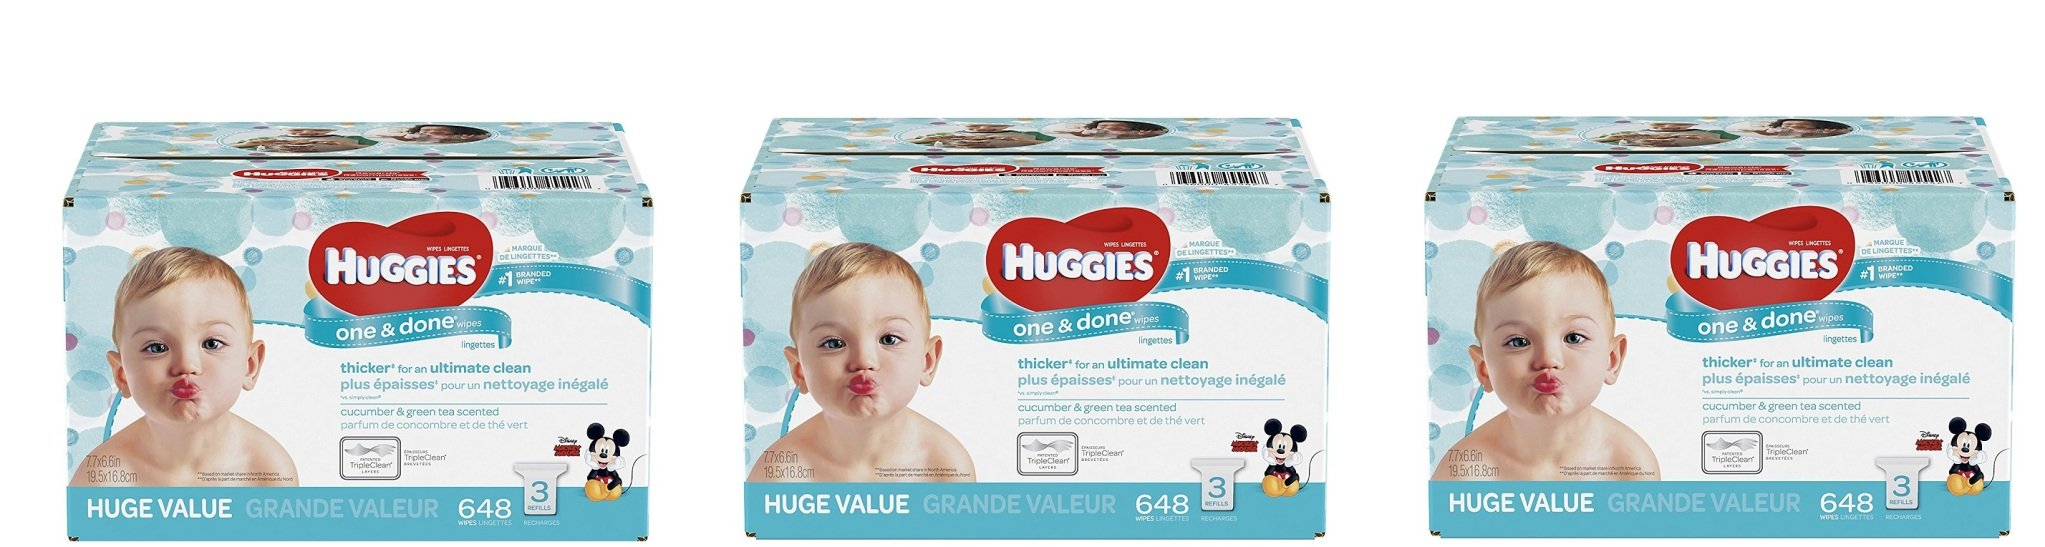 HUGGIES One and Done Refreshing Baby Wipes, Refill Pack (9-Pack, 1944 Sheets Total), Scented, Alcohol-free QIWYHK, Hypoallergenic